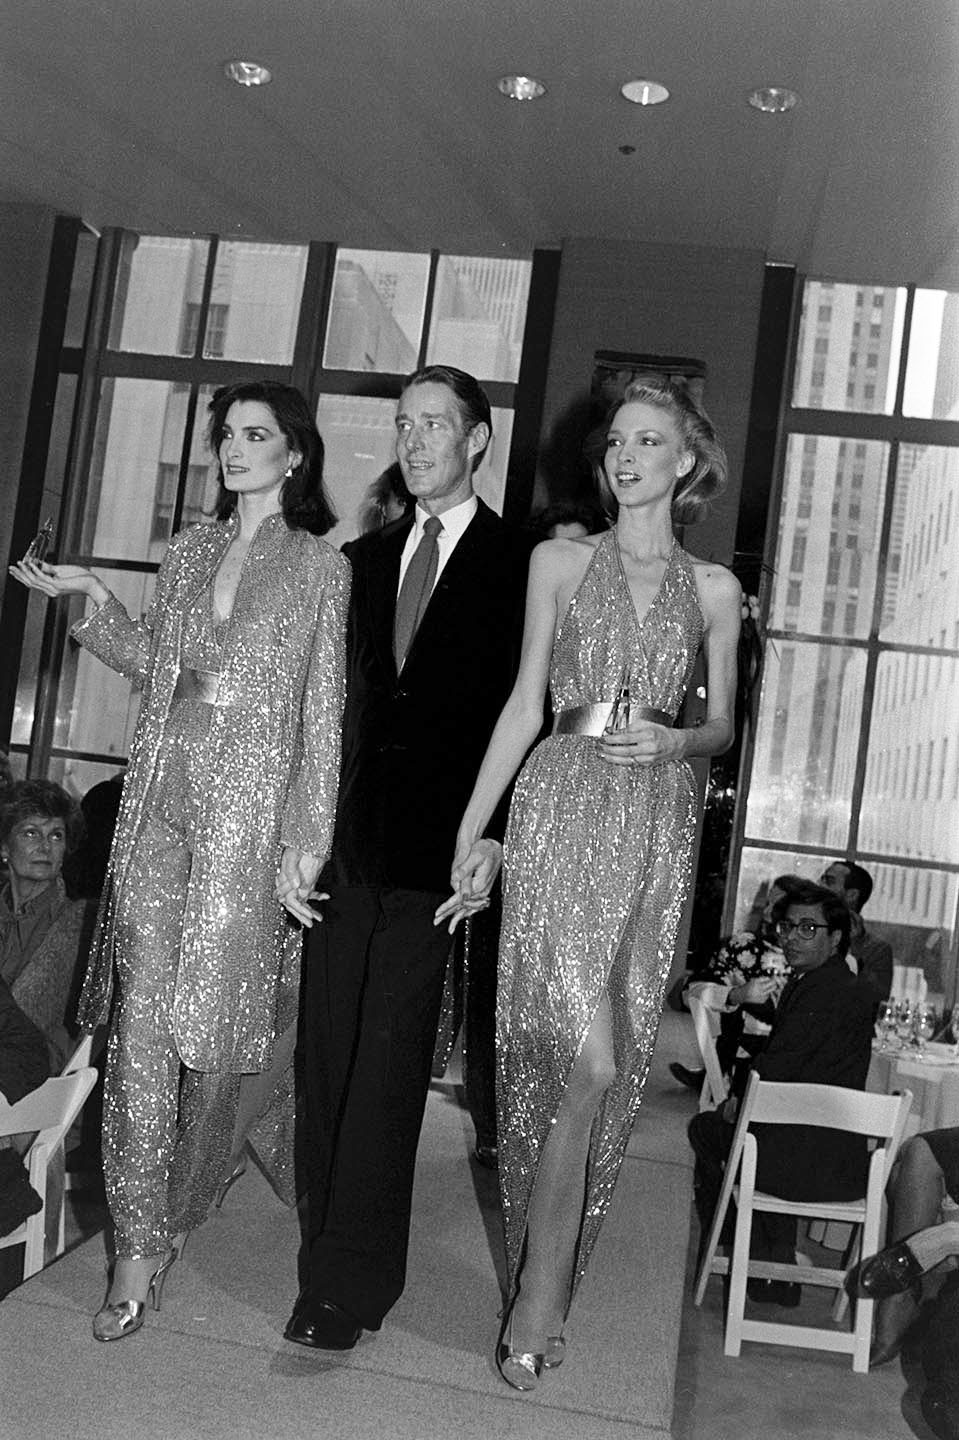 Designer Roy Halston with models Karen Bjornson and Margaret Donohue in looks from the Halston Made to Order Spring 1981 collection.